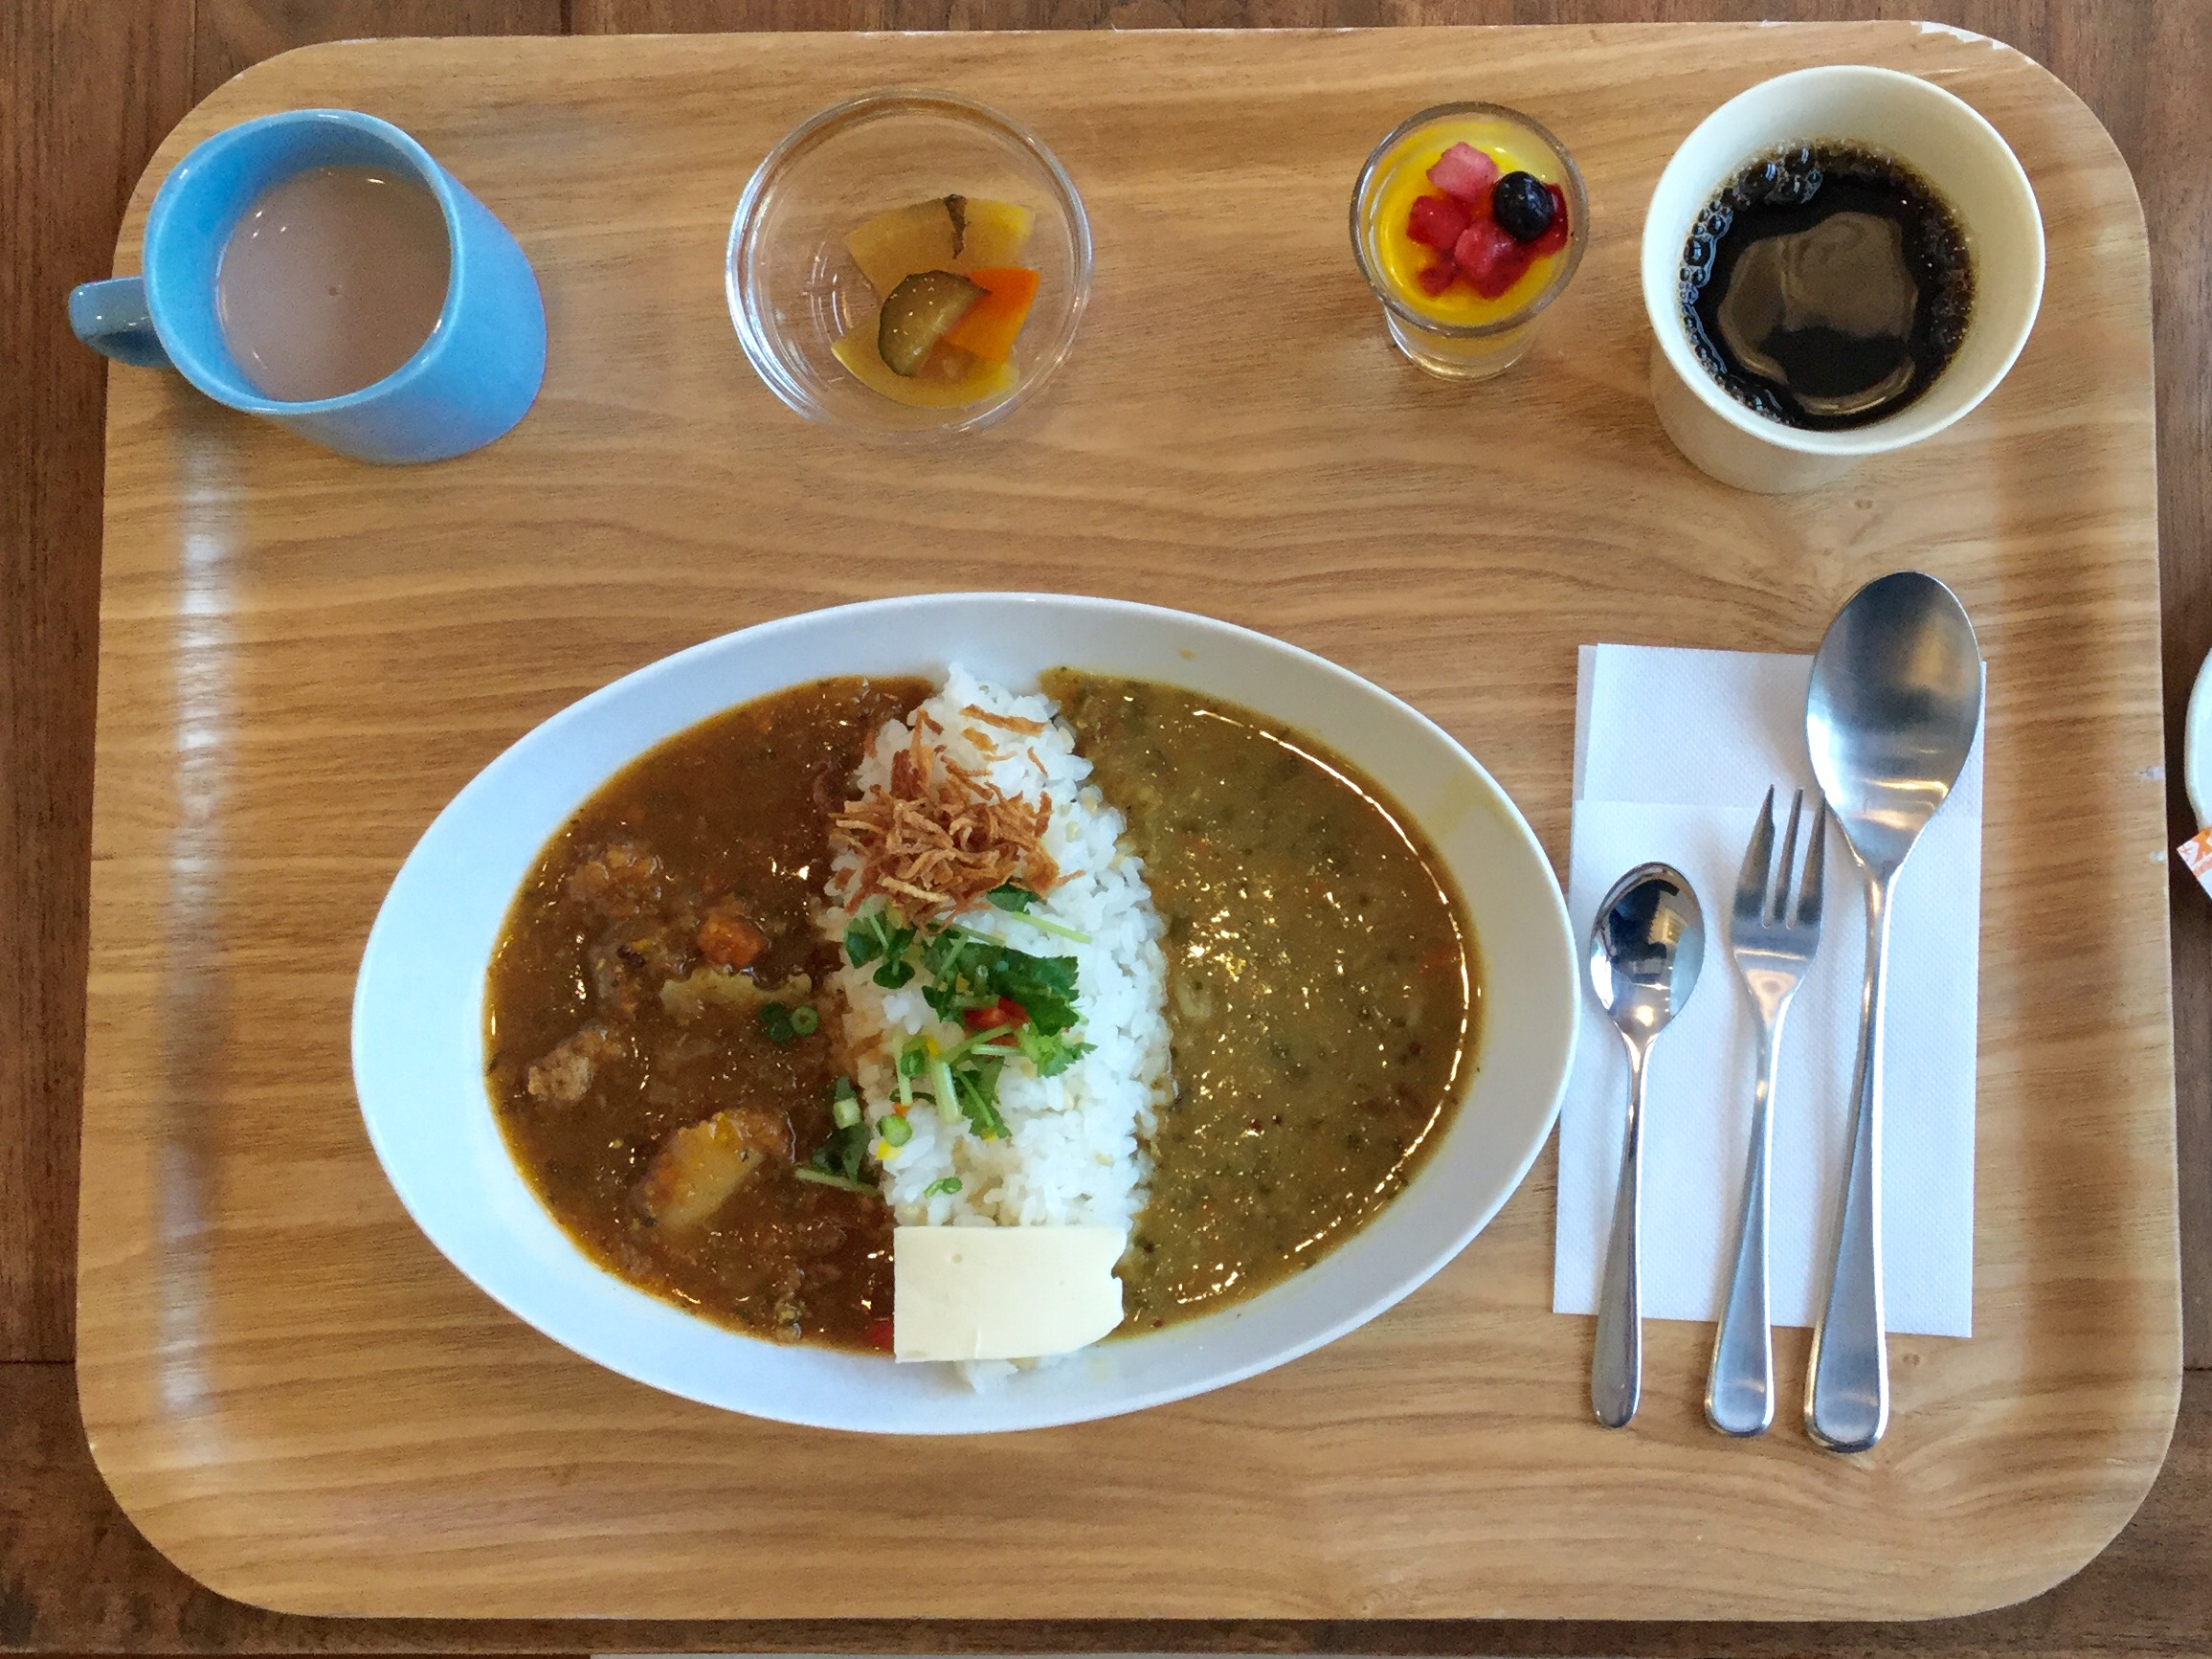 Nanahoshi's lunch of new style Kanazawa curry